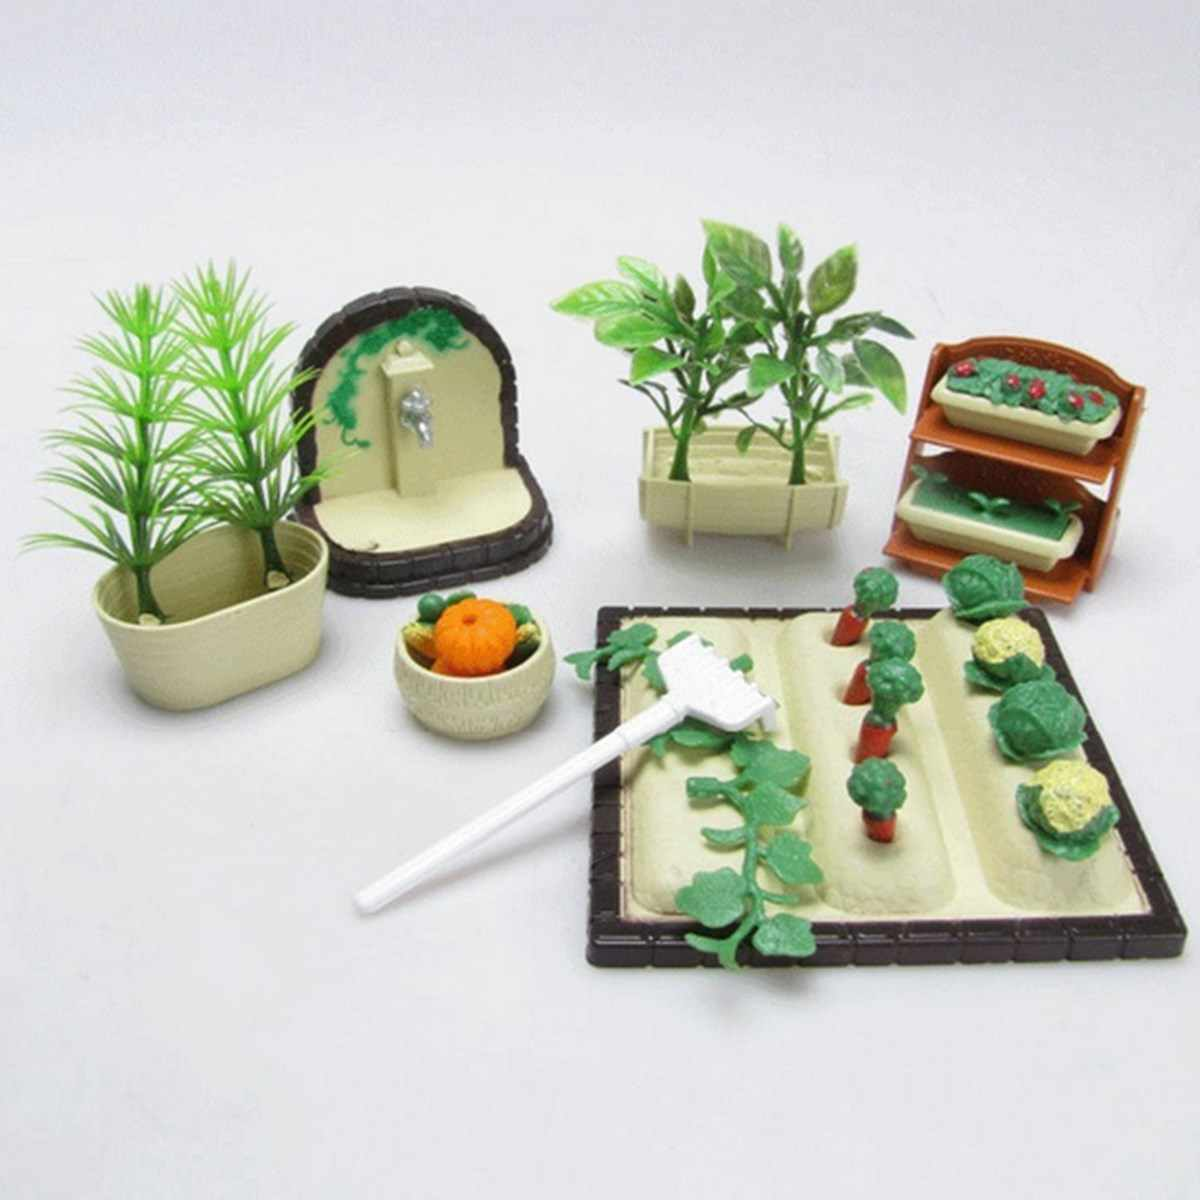 DIY Handmade Miniature Gardening Vegetables Sets For Dollhouse Furniture Outdoor Accessory Toys Set